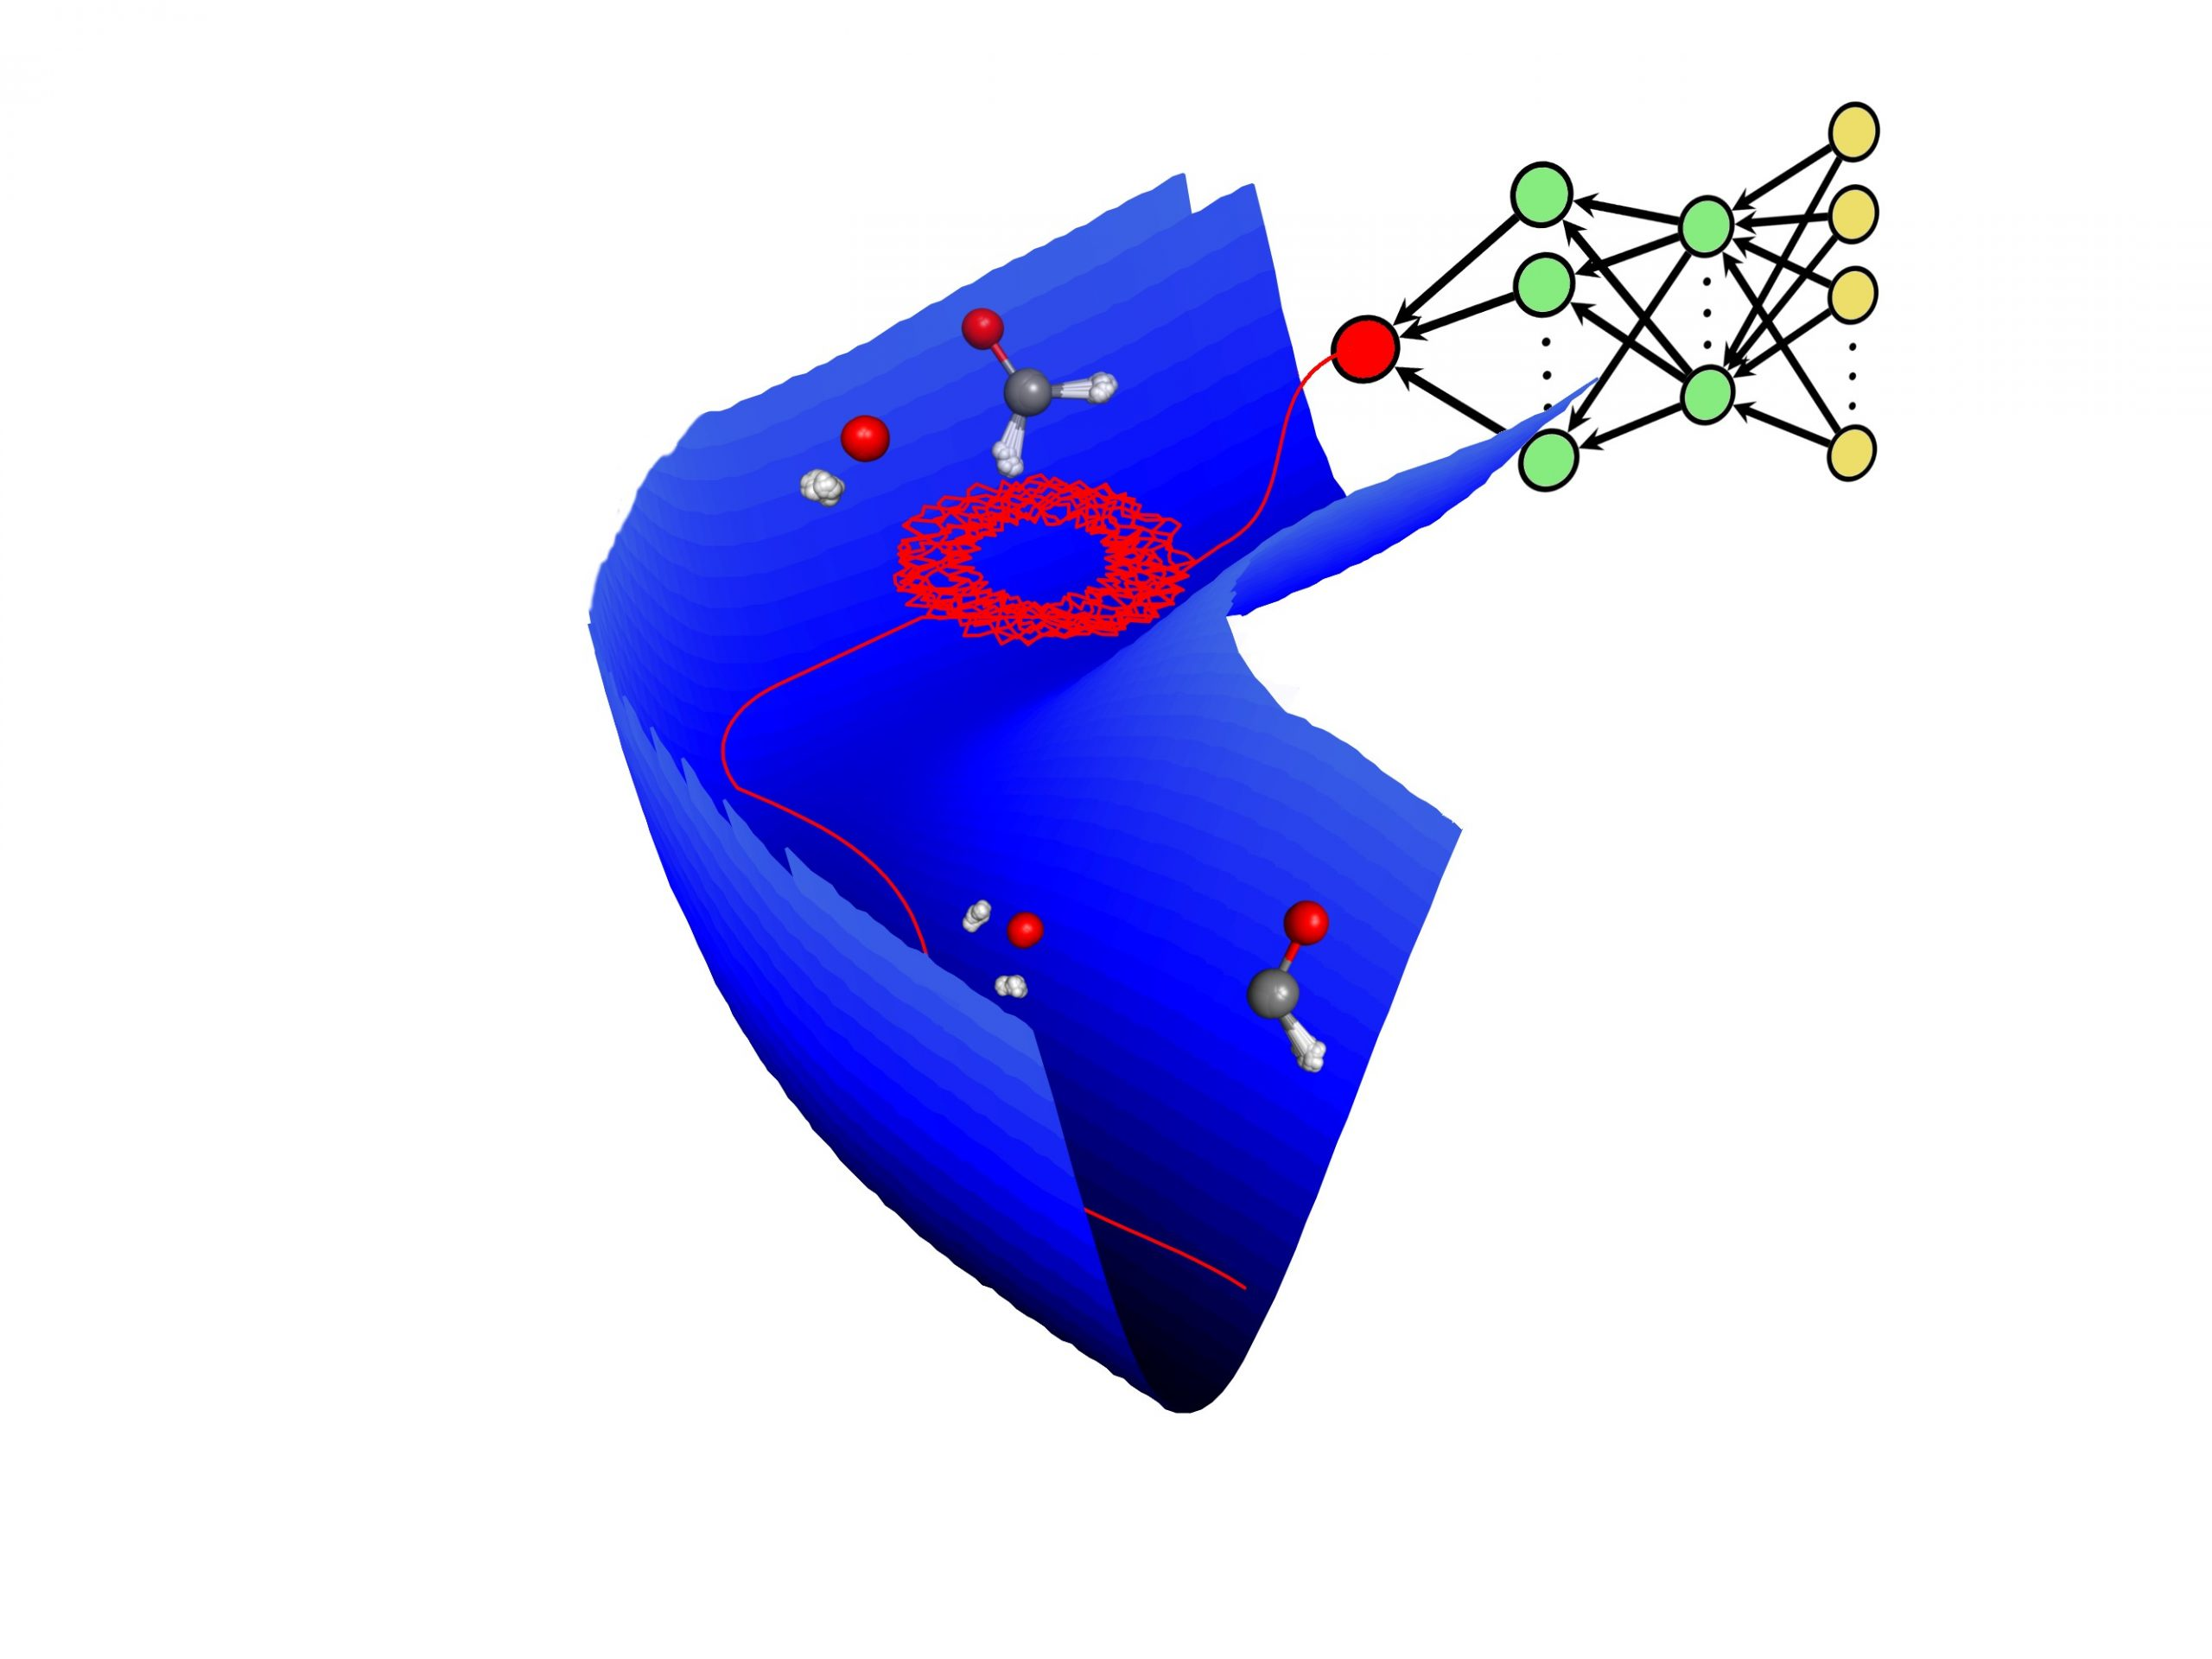 Reactions of complex organic molecules at low temperatures using Potential Energy Surfaces and semi-classical (Ring-Polymer Molecular Dynamics) and classical methods to determine coefficient rates